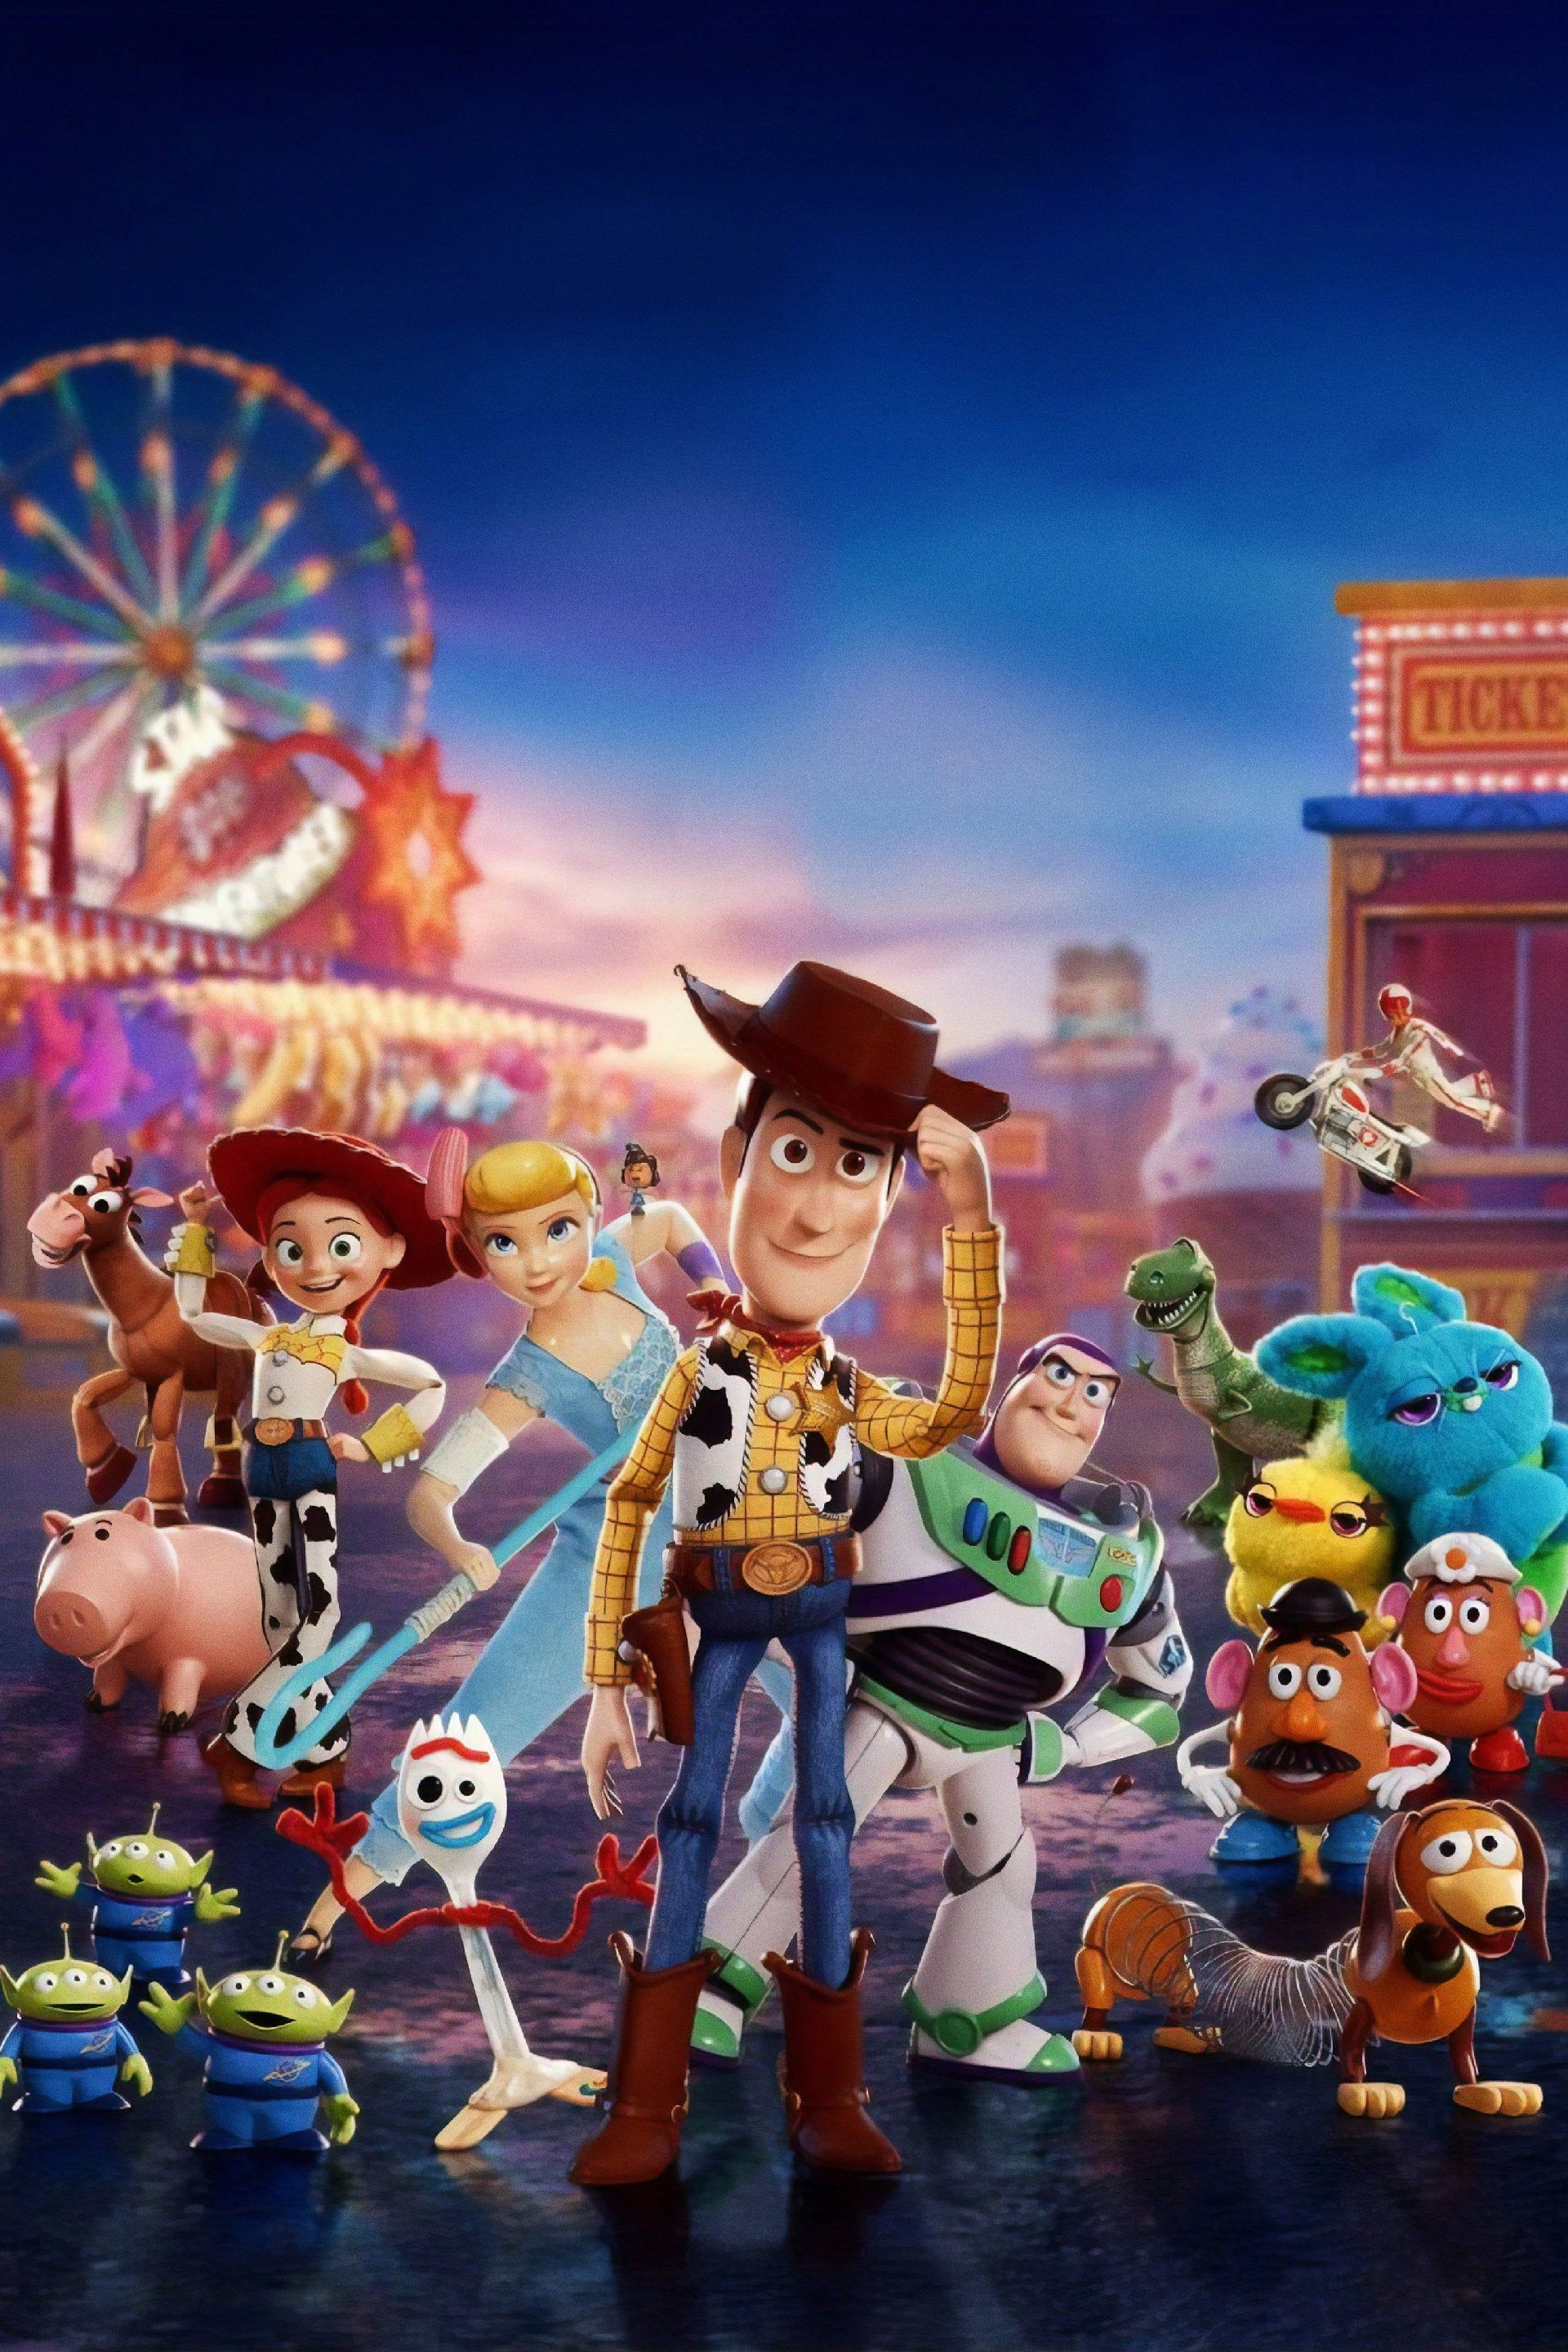 Toy Story 4 (2019) Poster Wall art Print